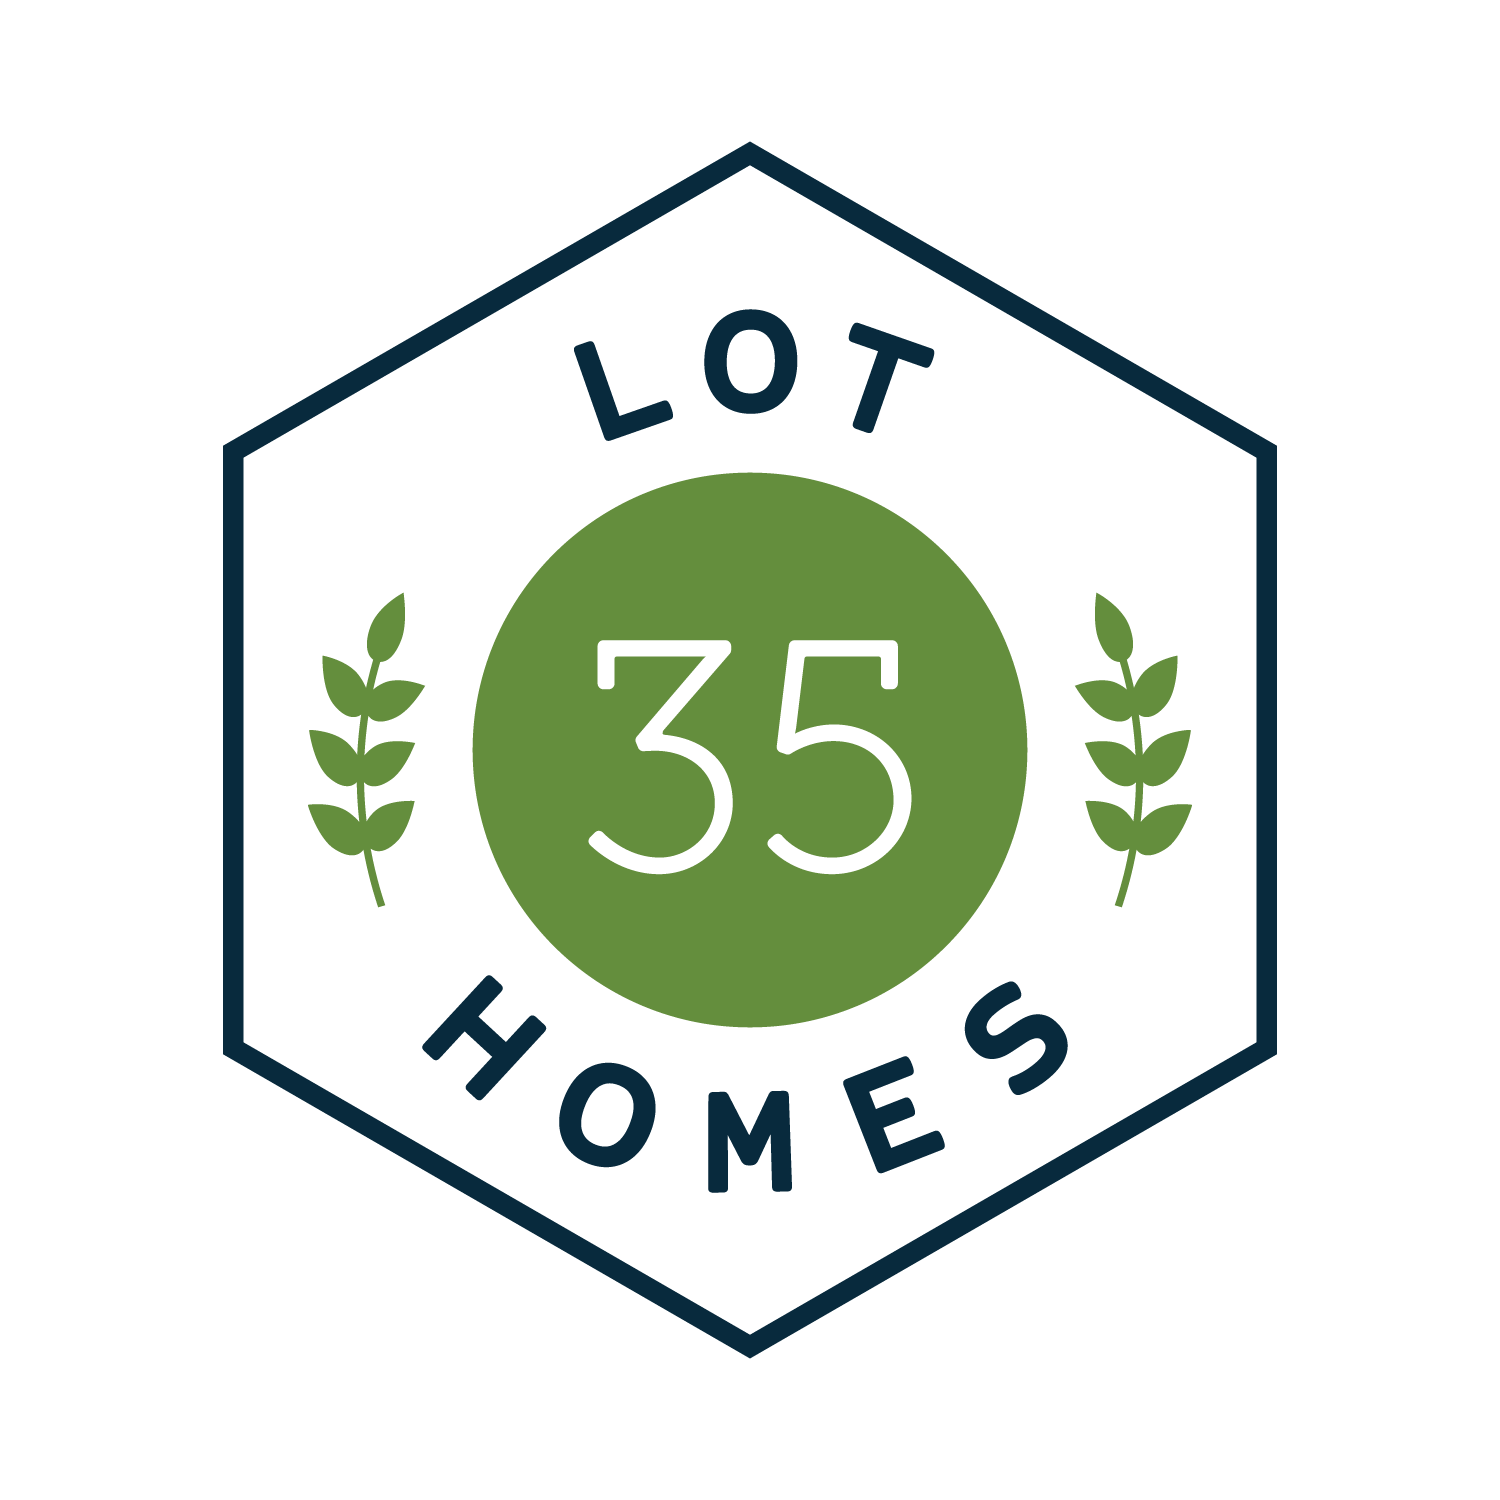 Lot 35 Homes